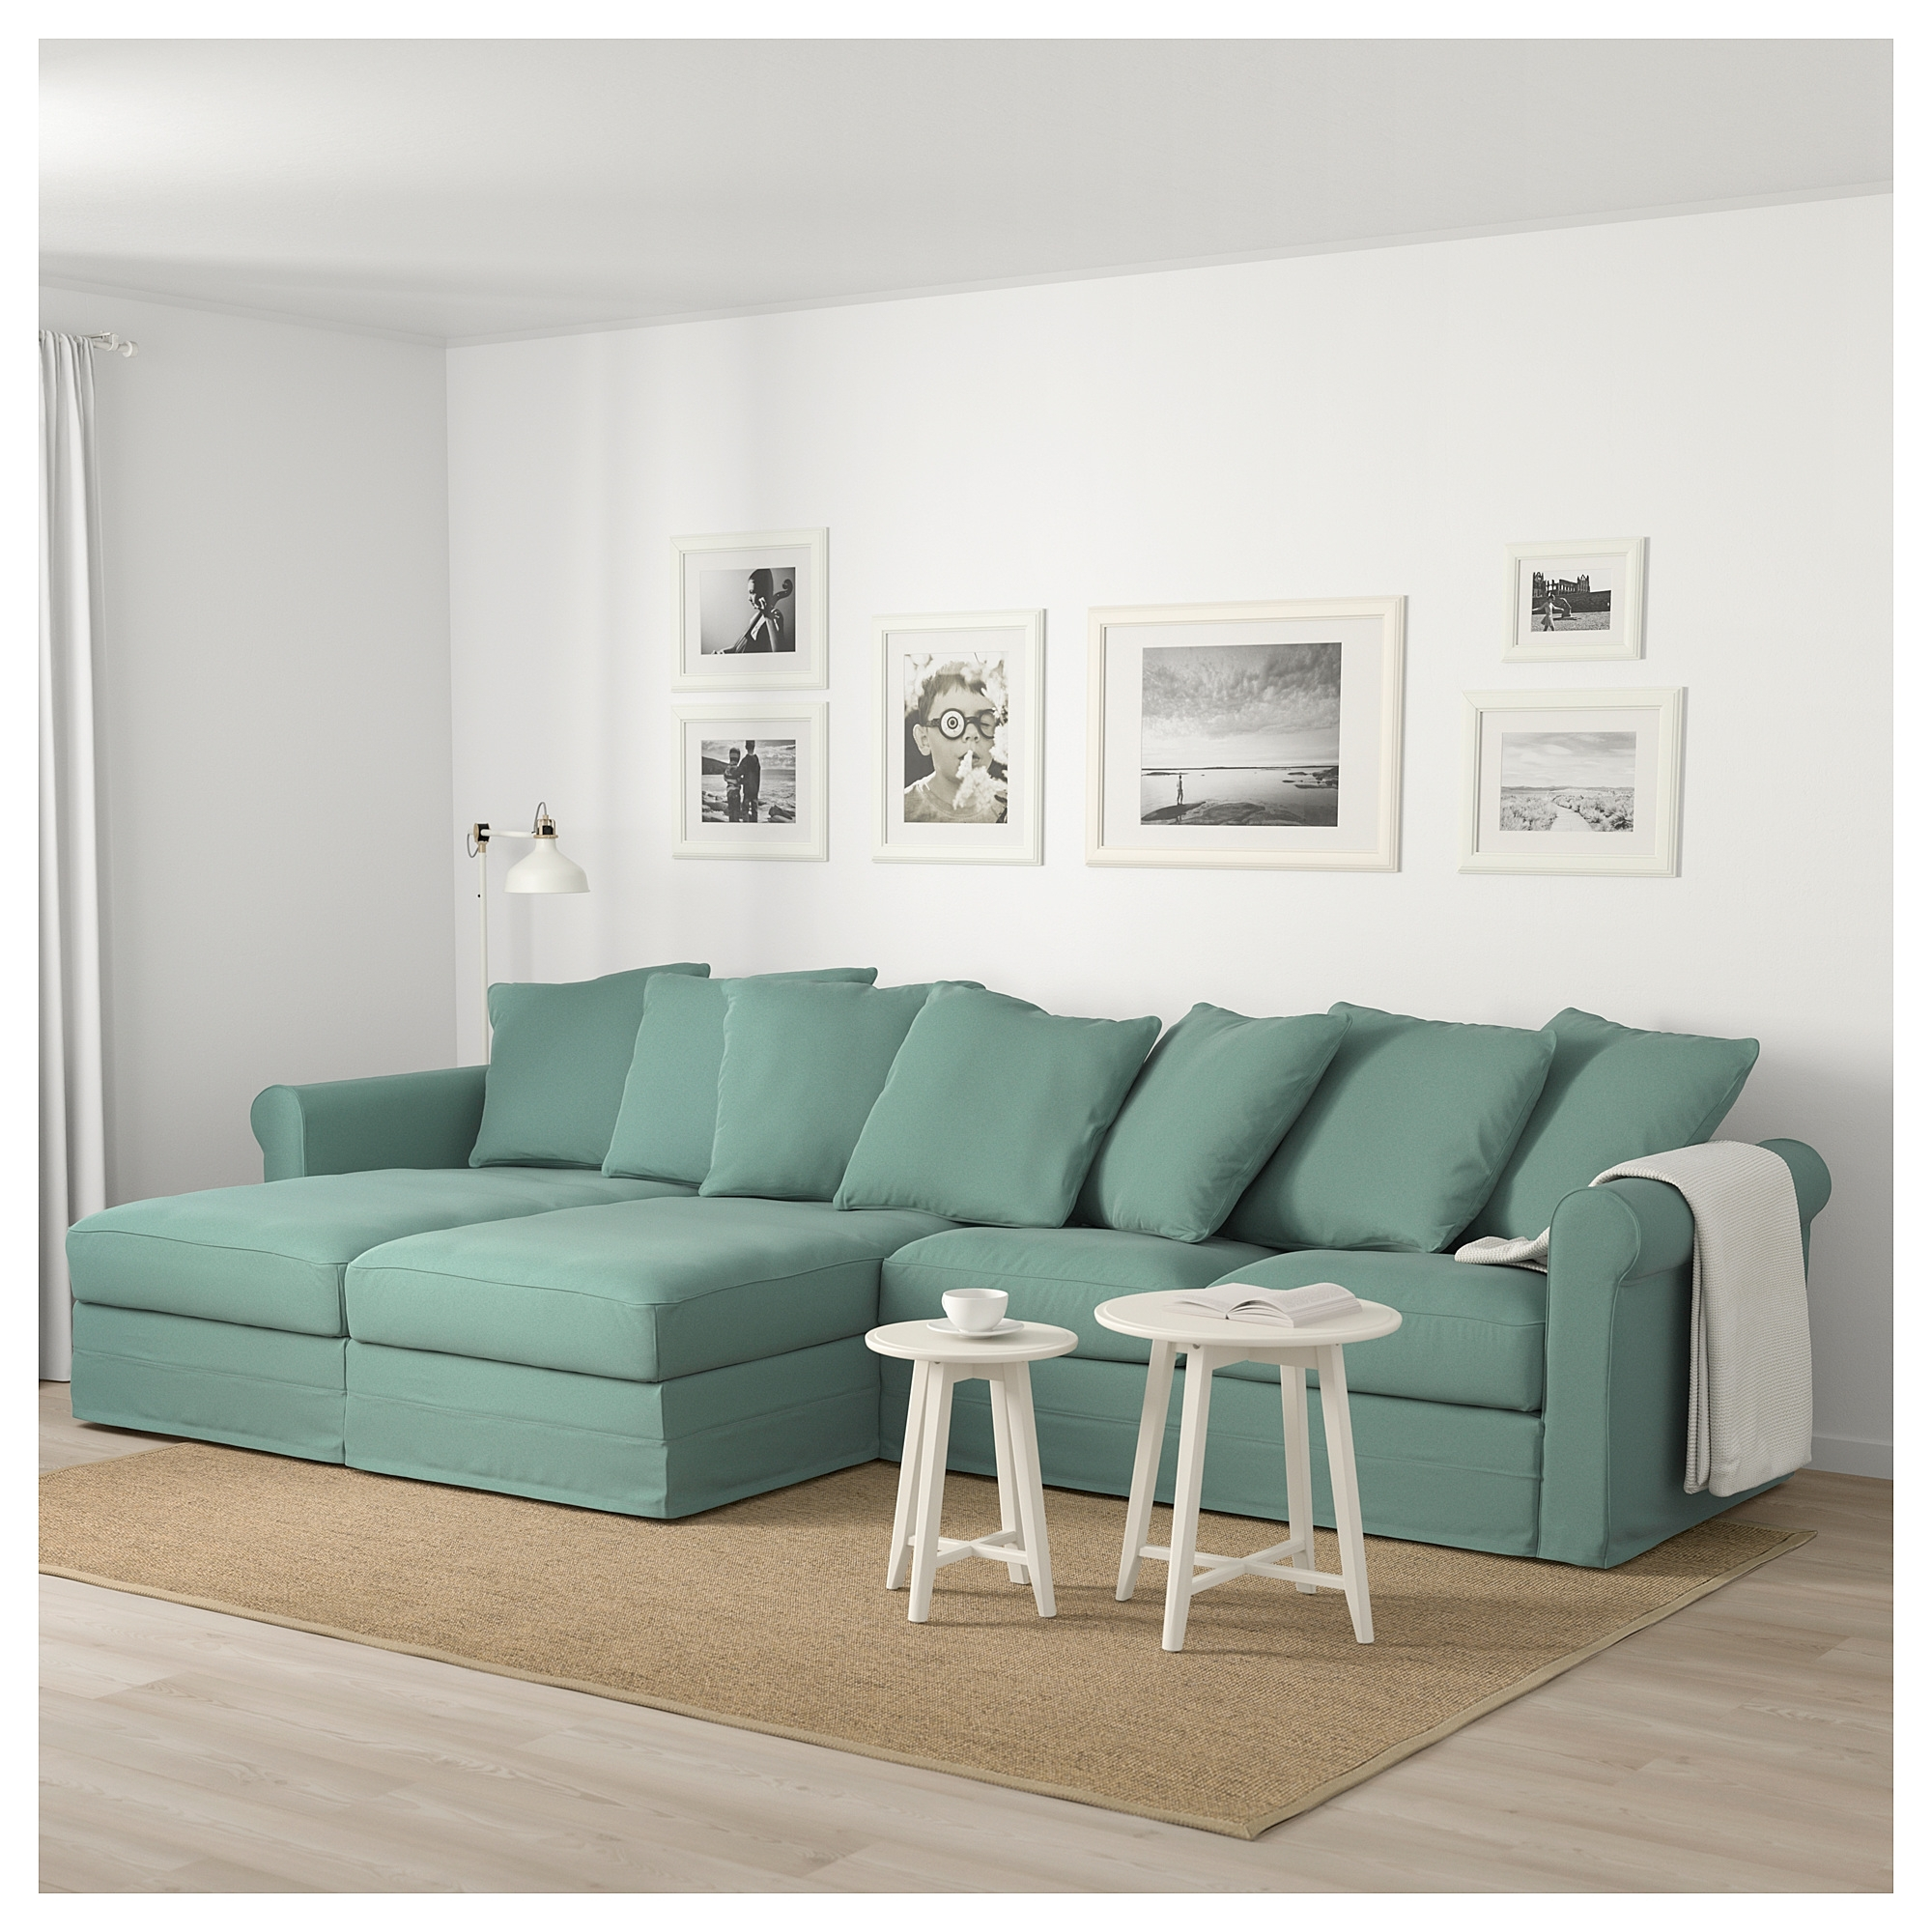 Ikea – Grönlid Sectional, 4 Seat With Chaise, Ljungen Light Green Inside London Optical Reversible Sofa Chaise Sectionals (Image 11 of 25)